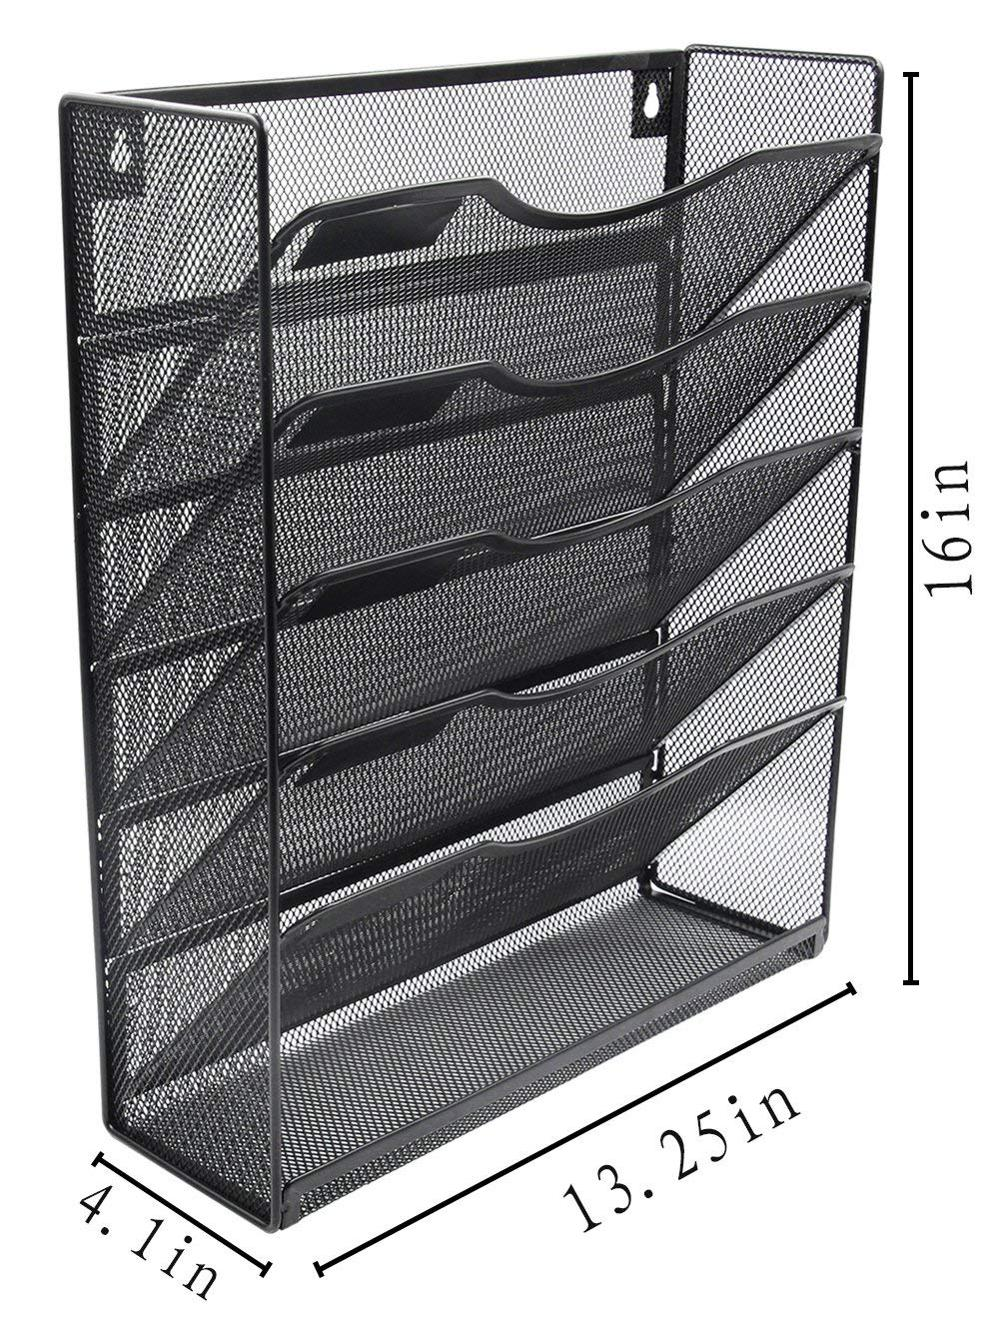 Wideny office supply black metal mesh hanging wall mount mounted organizer file holder for document